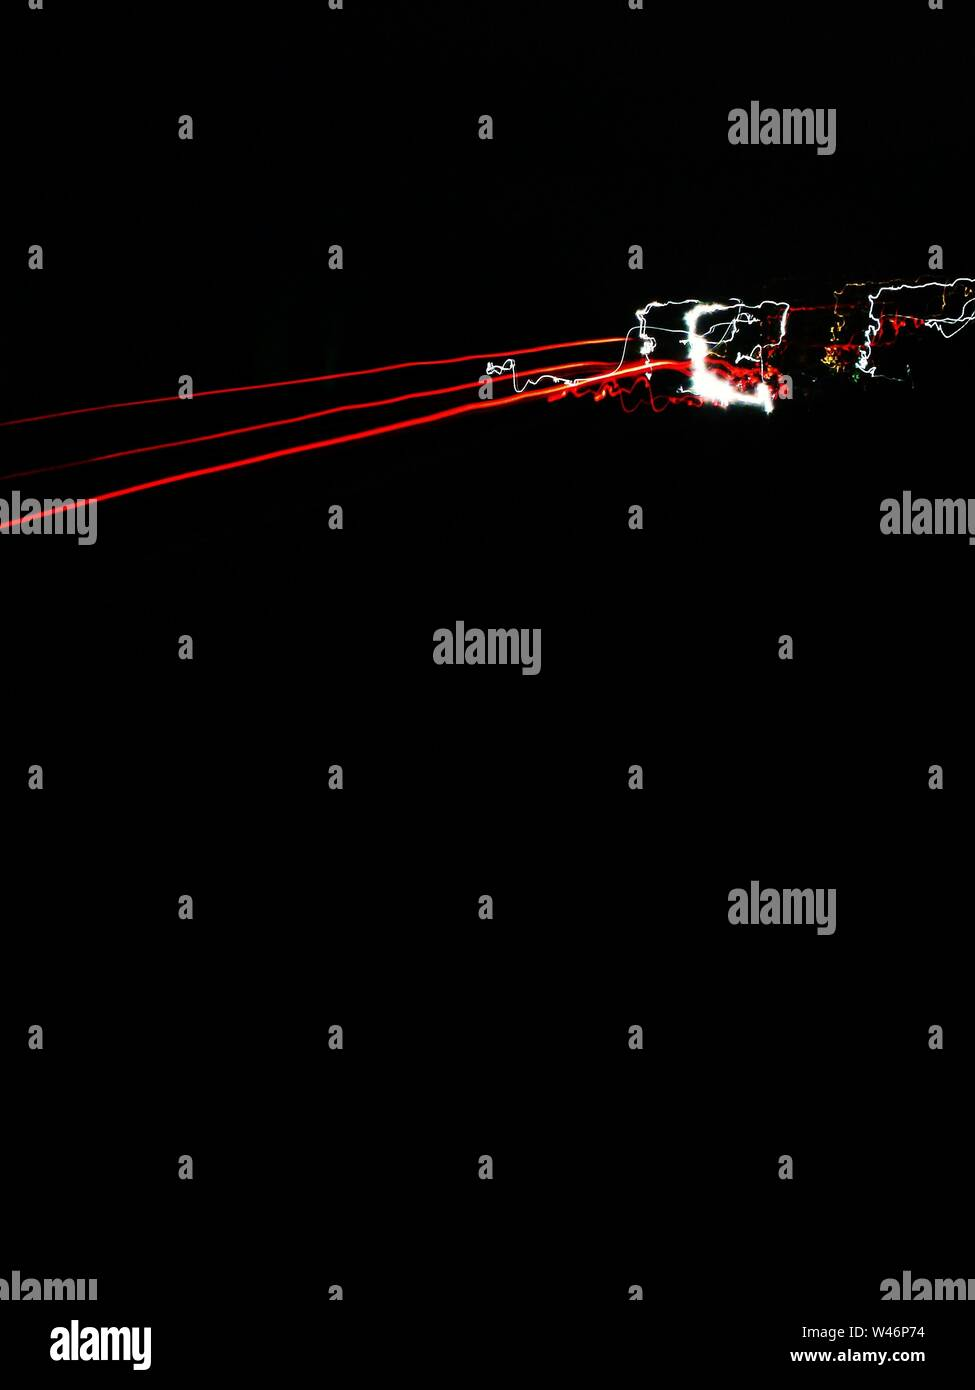 A Cool Vertical Wallpaper With Red And White Light Trails On A